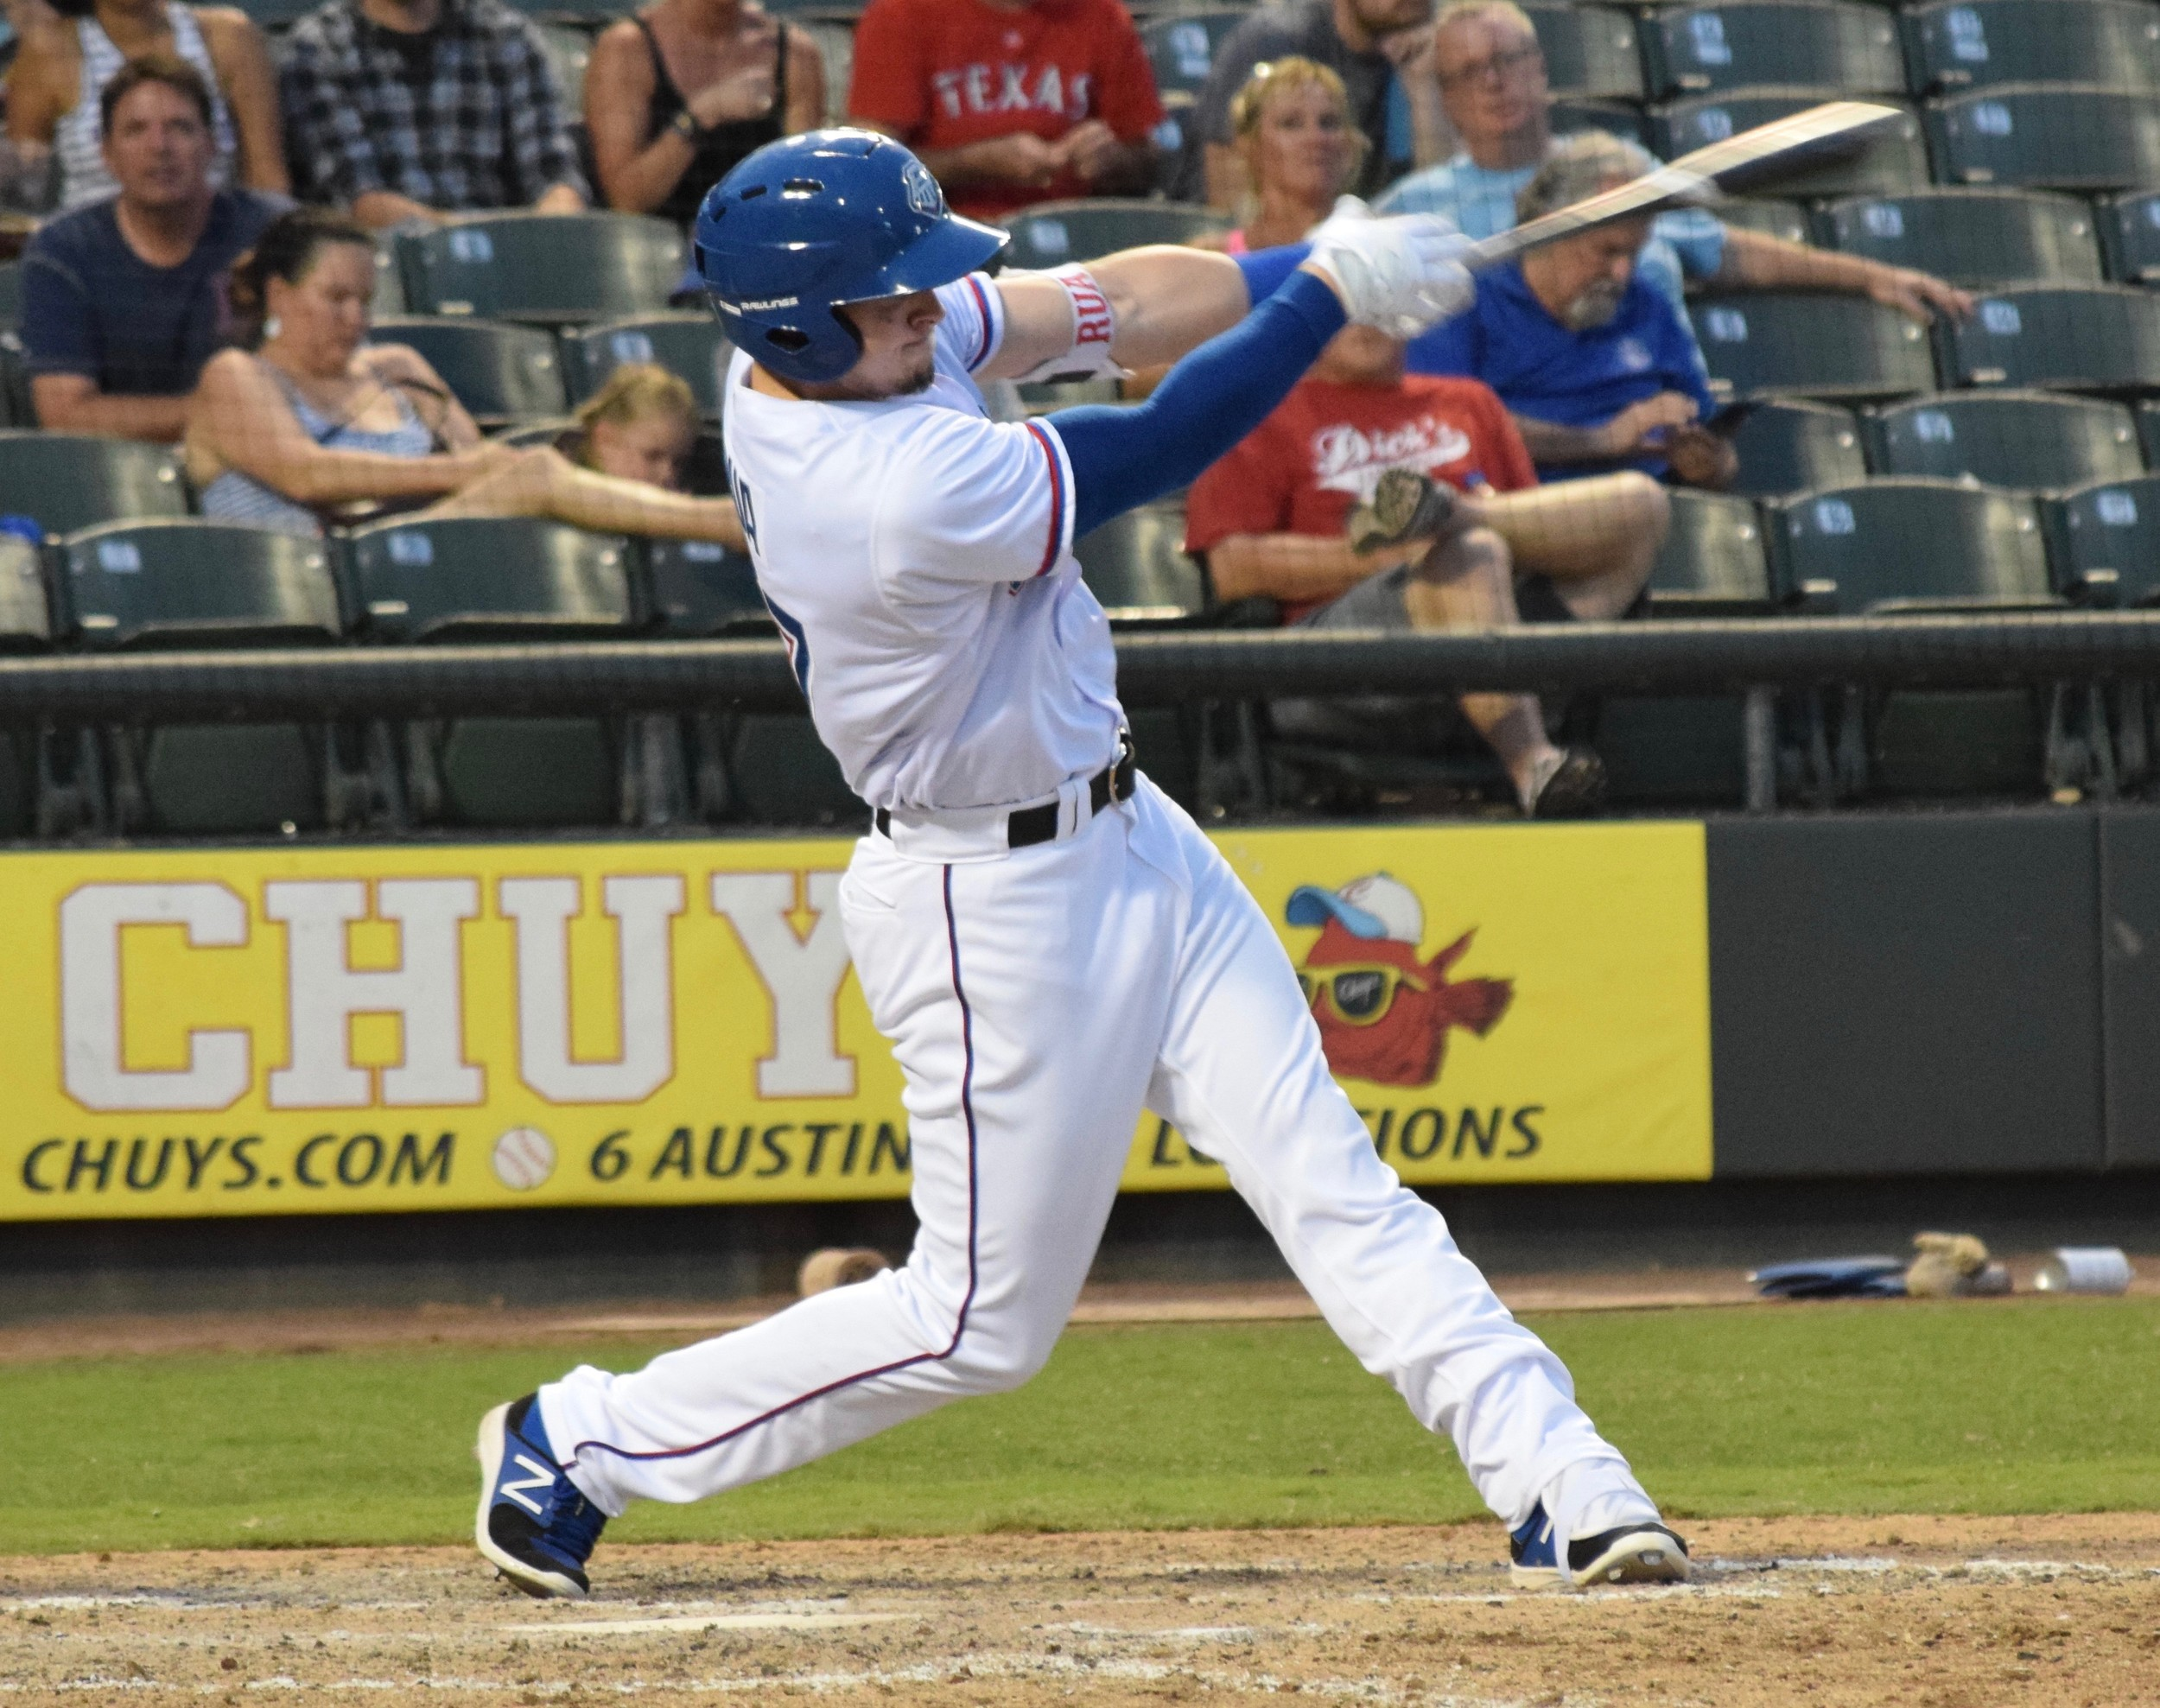 Ryan Rua hit a two-run home run and the Express beat the Colorado Springs Sky Sox 2-1 on Wednesday night.